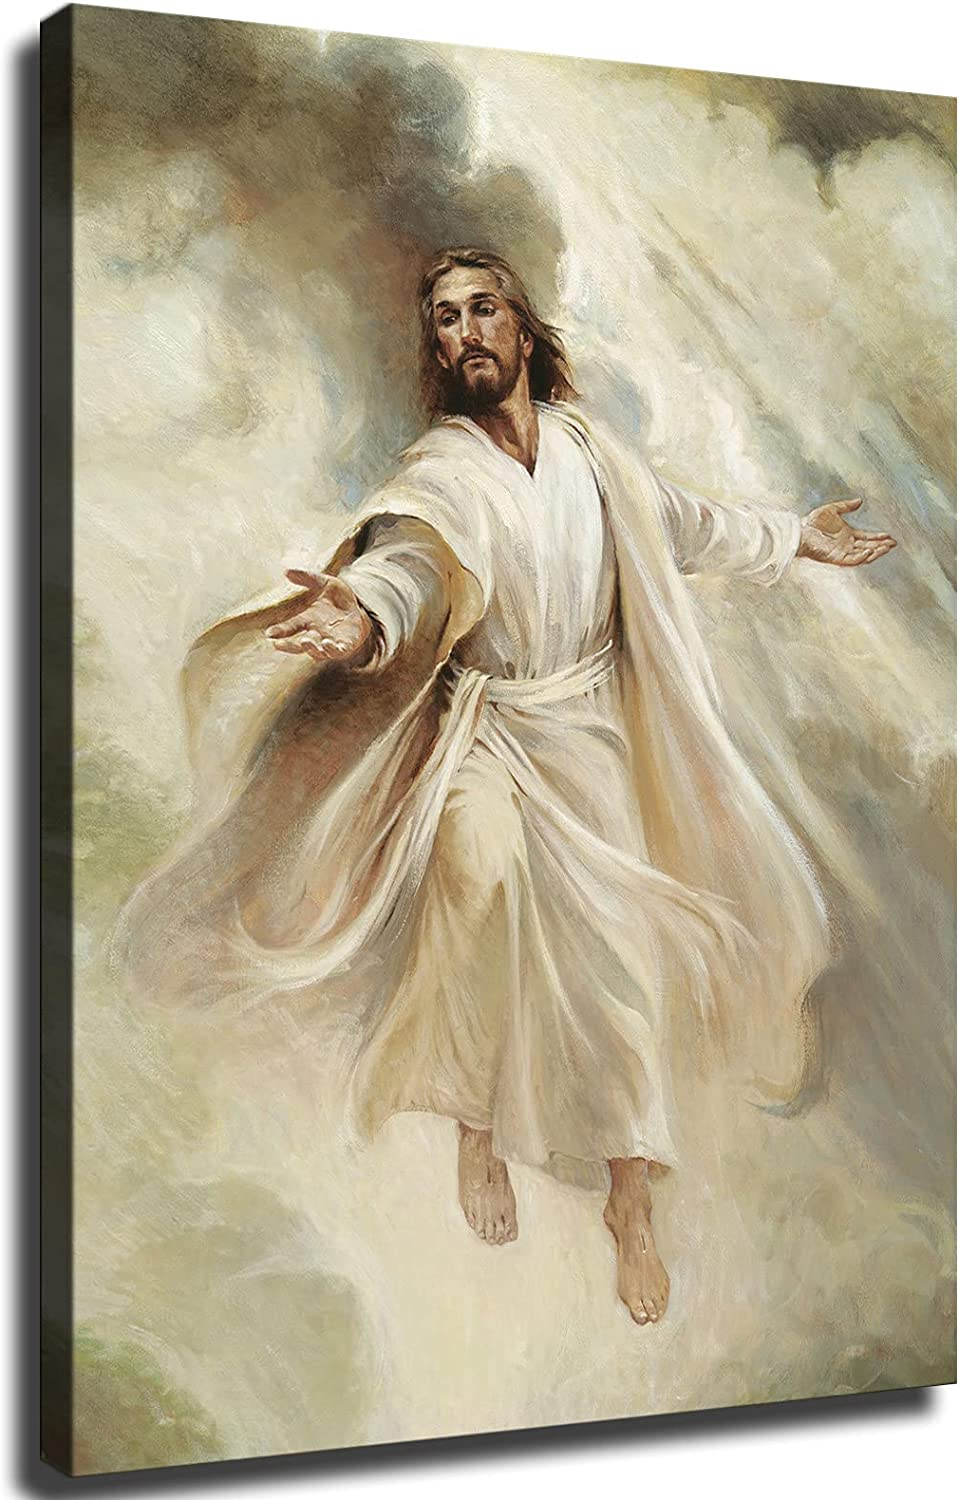 Sales of SALE items from new works Jesus reaches out Long Beach Mall the hand Poster Print Canvas salvation Wall